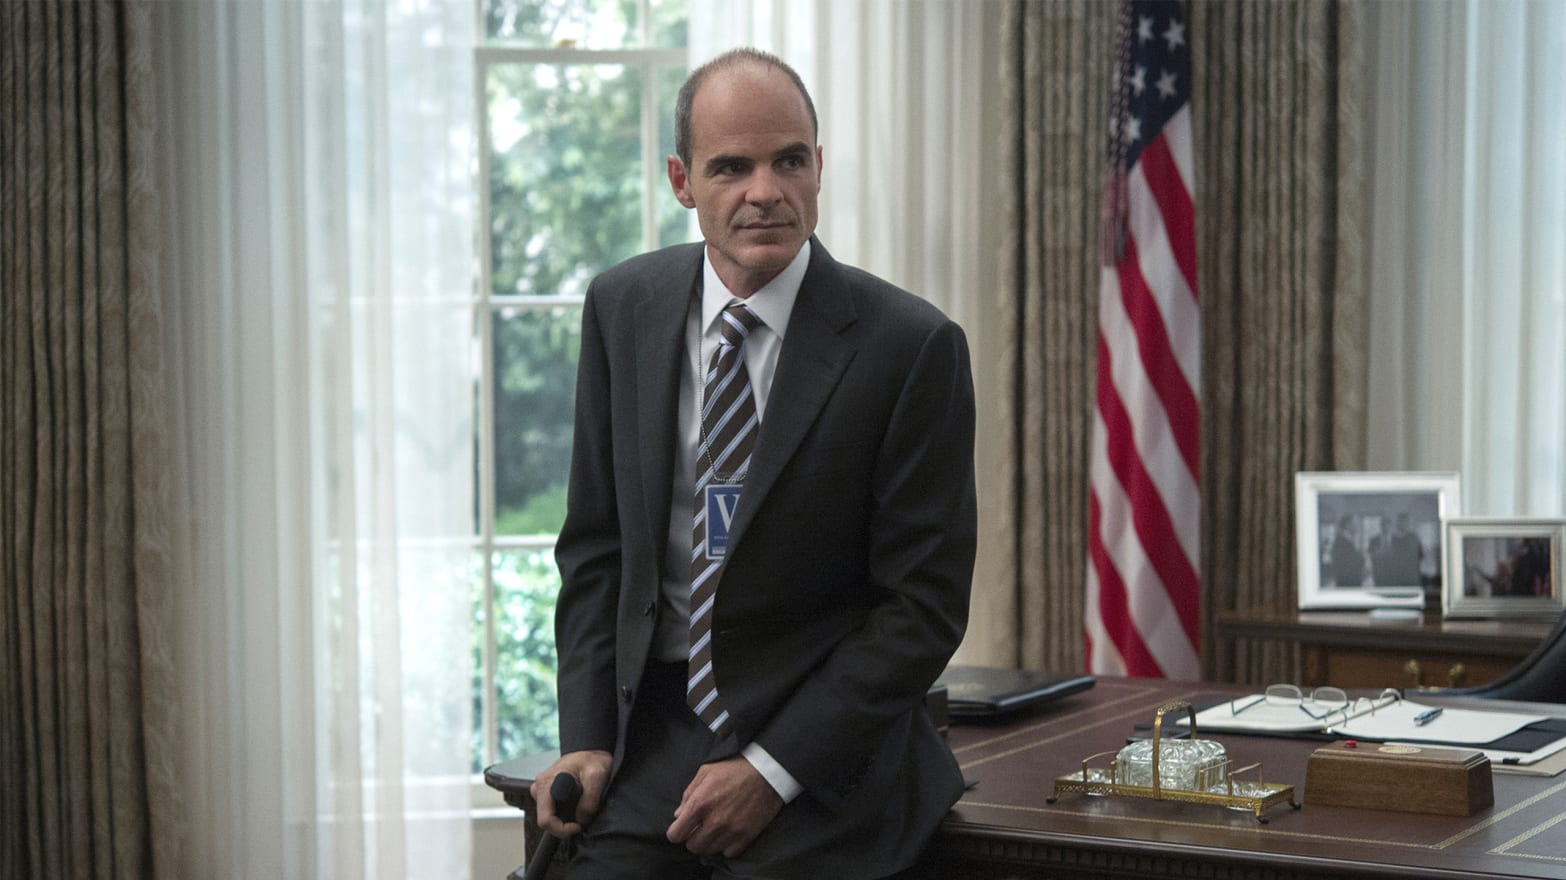 House Of Cards Secret Weapon Doug Stamper Tells All